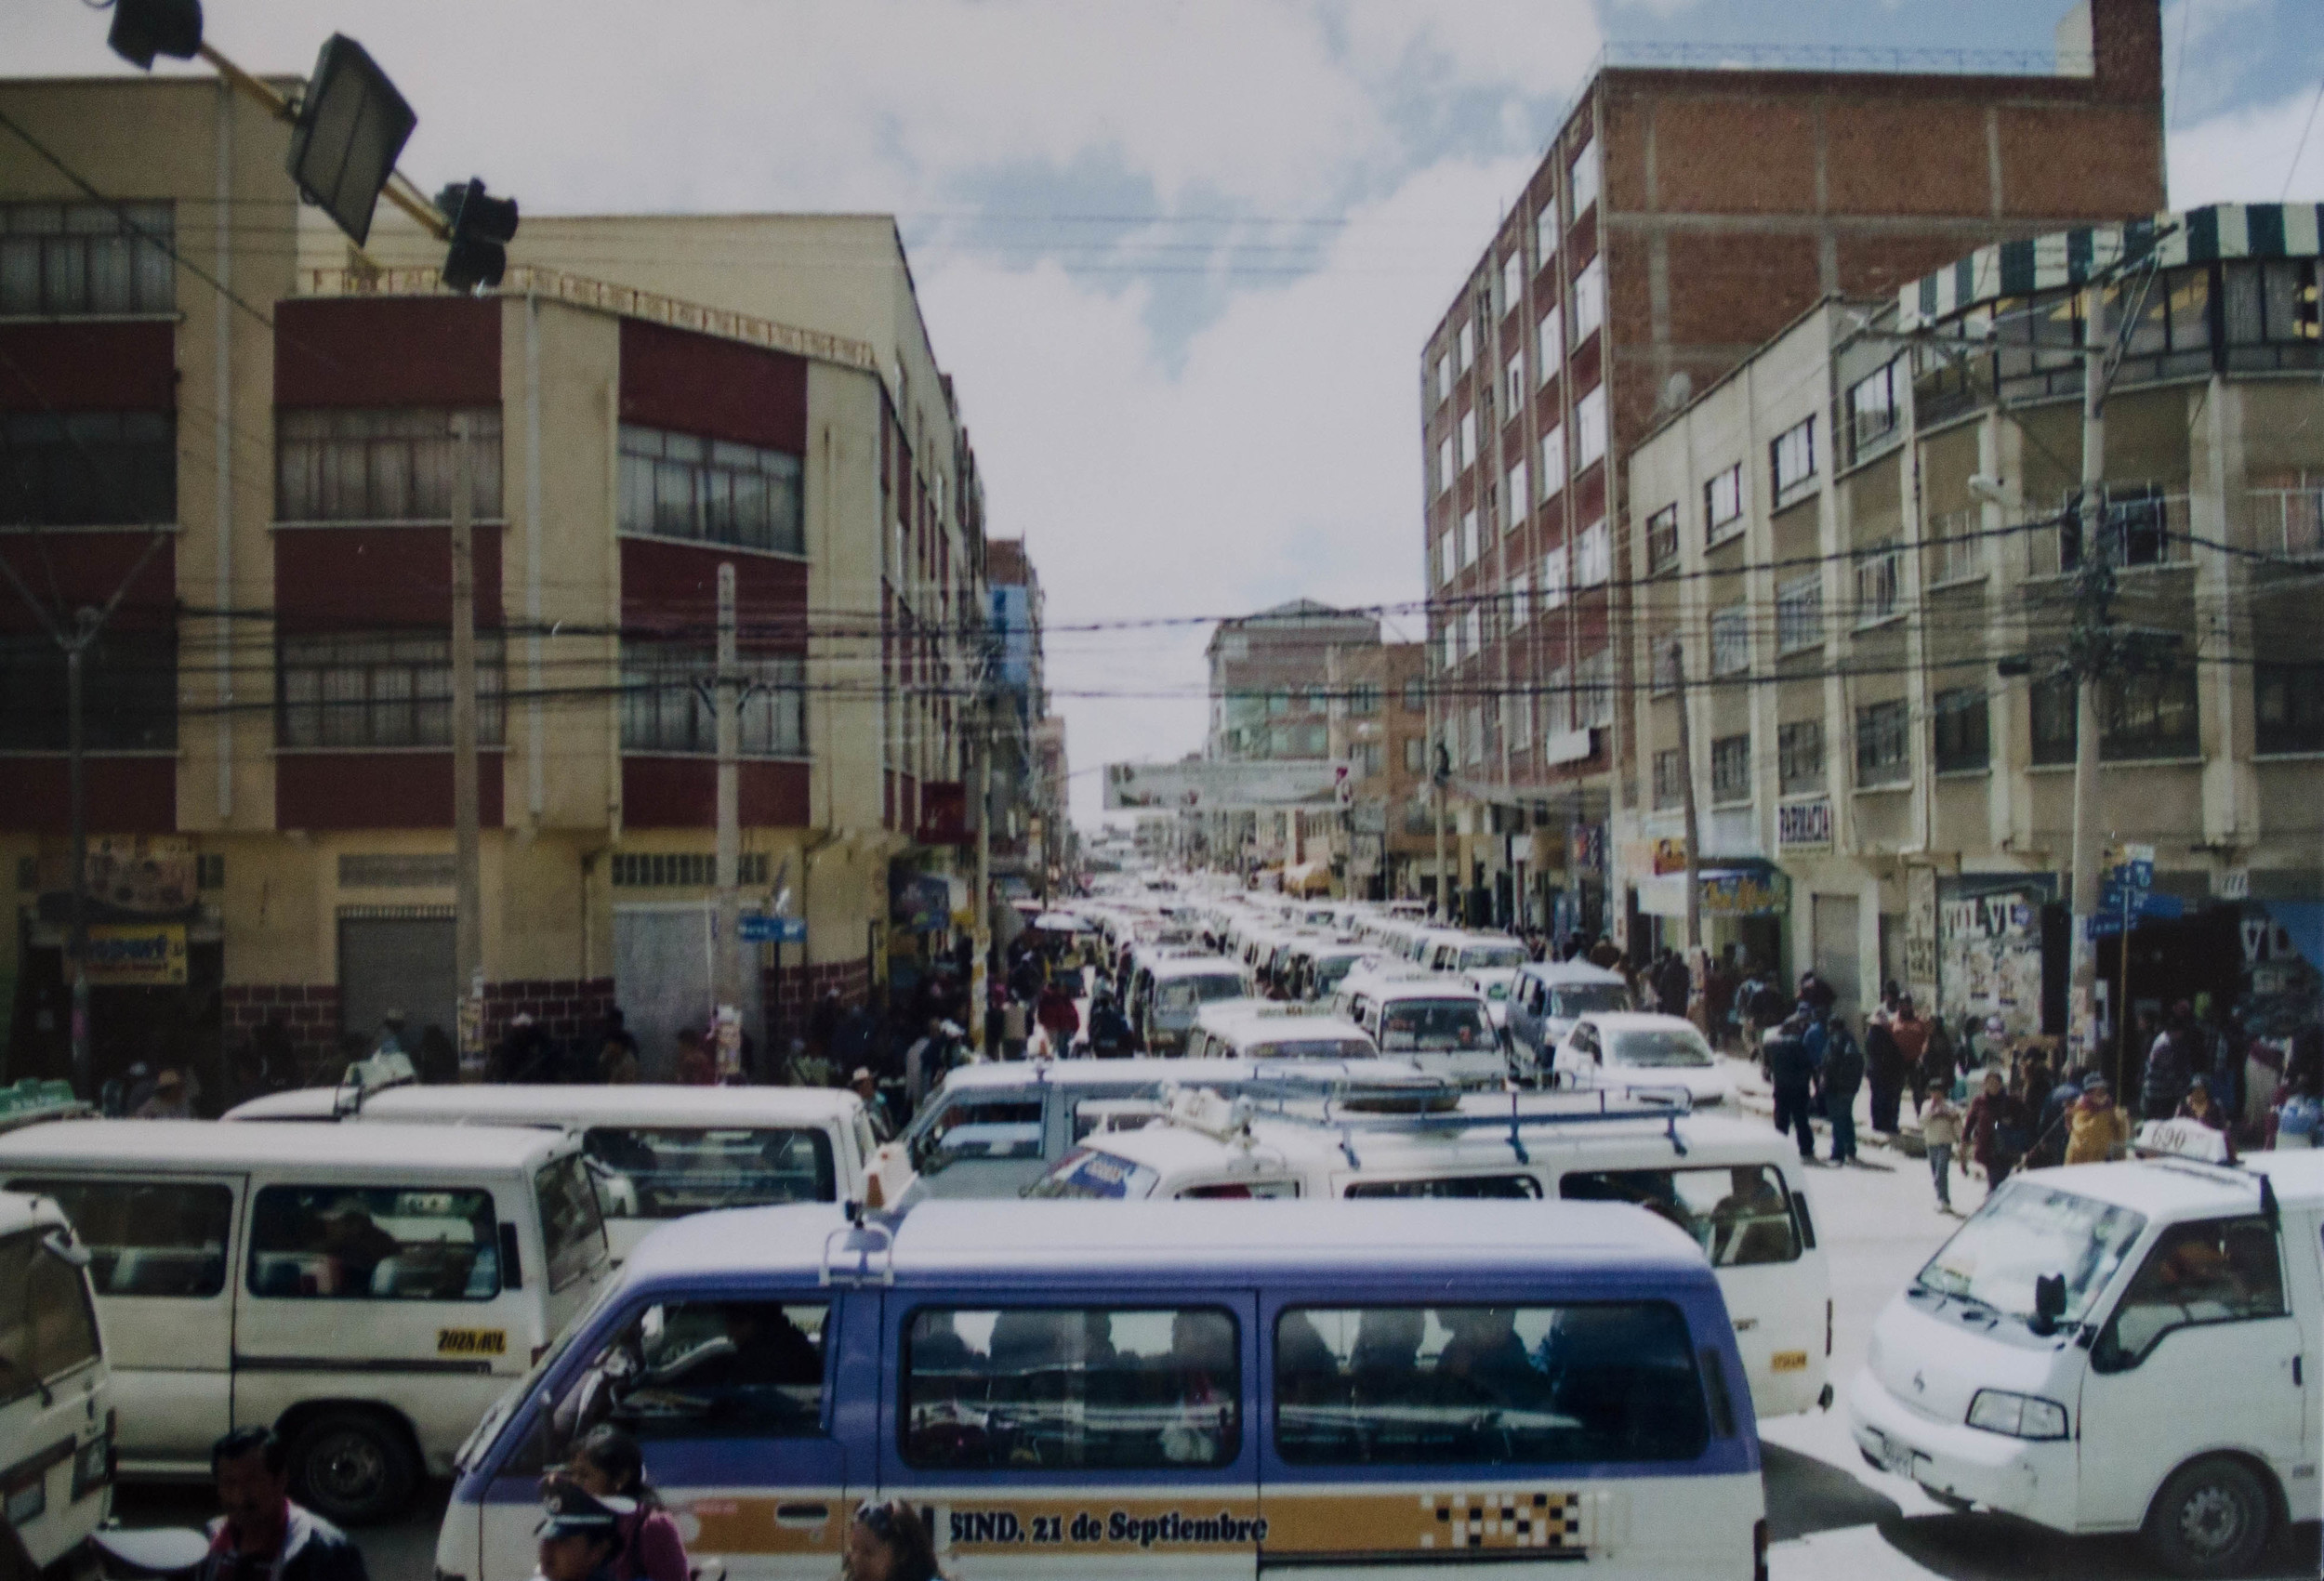 busy intersection in La Paz //february 2015